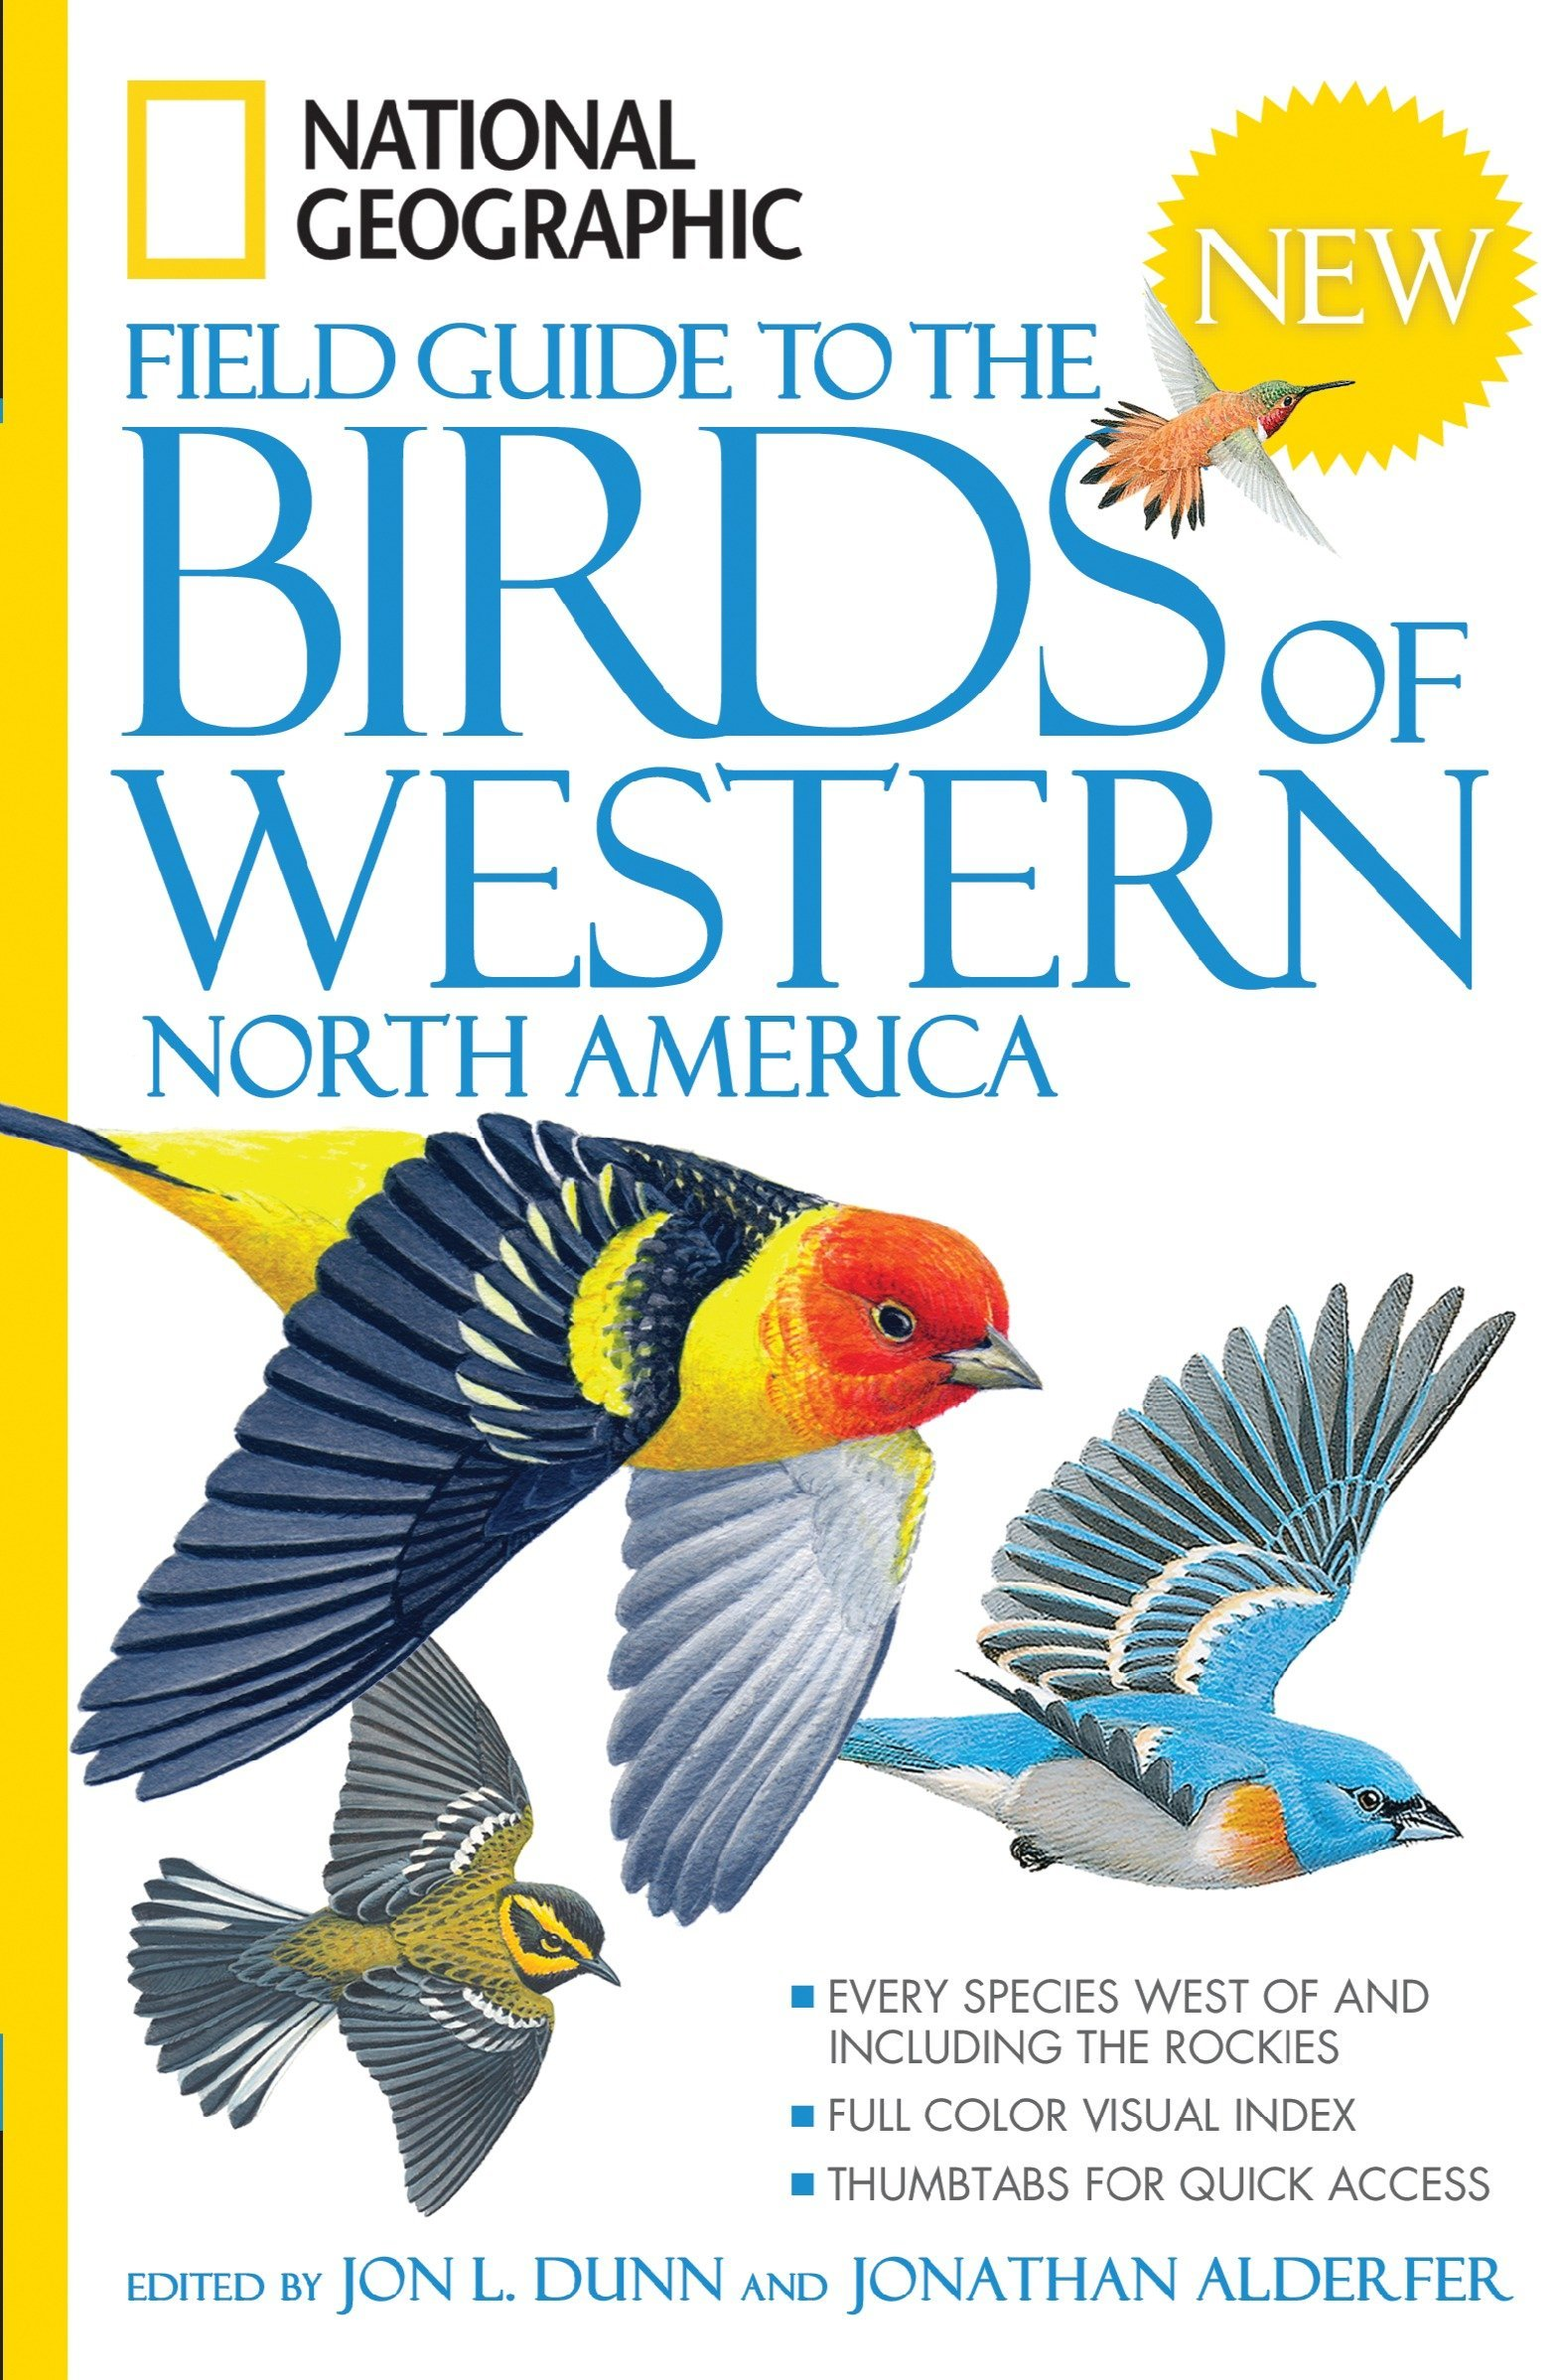 National Geographic Field Guide to the Birds of Western North America: Jon  L. Dunn, Jonathan Alderfer: 9781426203312: Amazon.com: Books